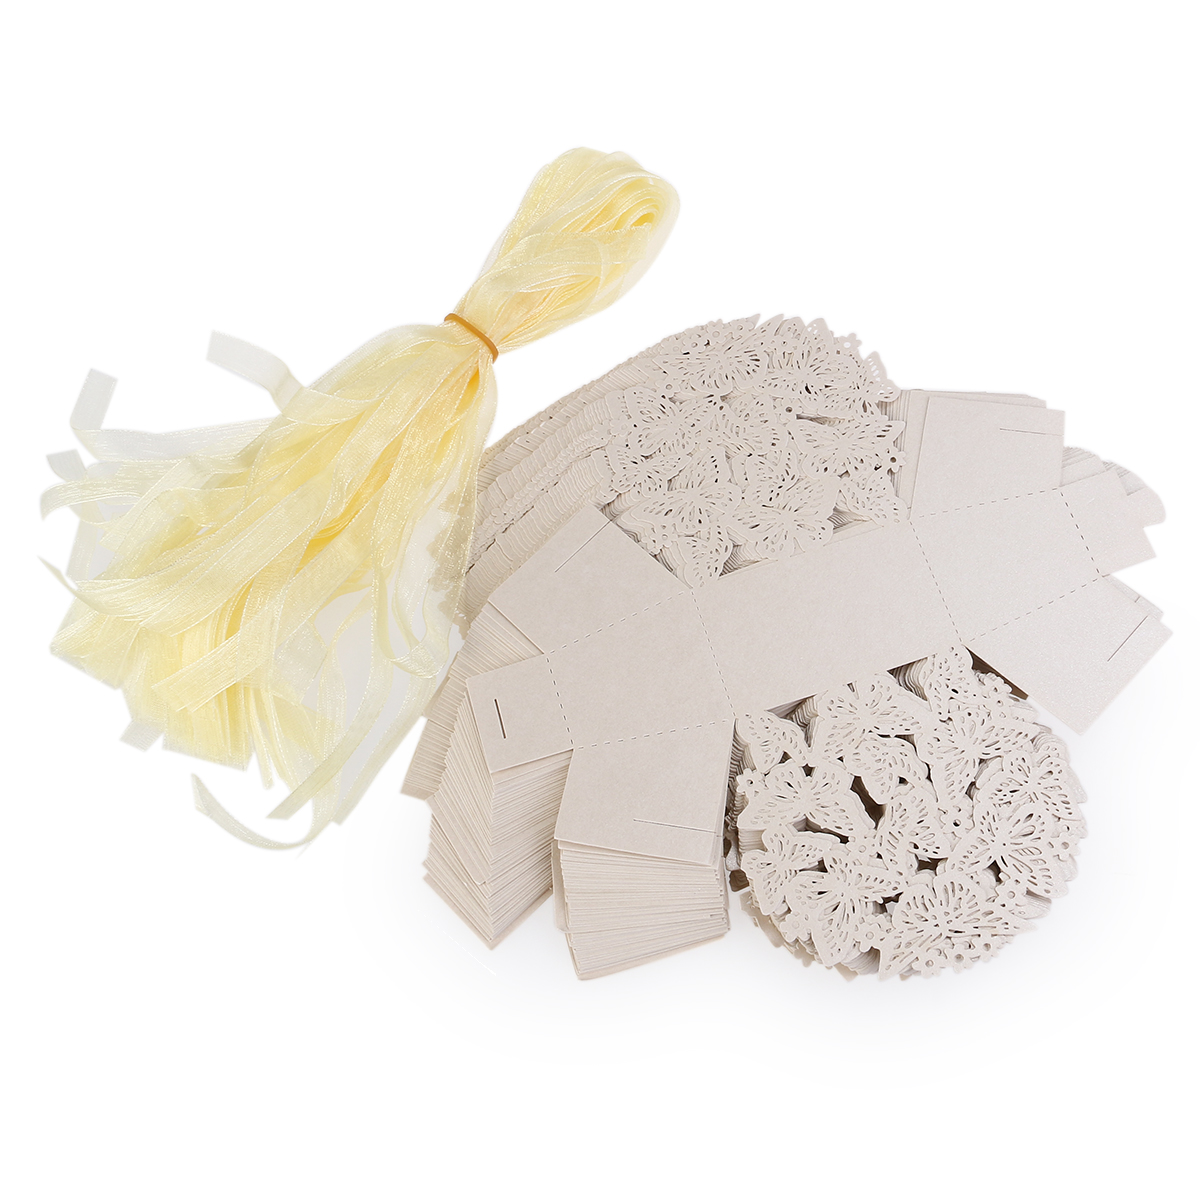 Wedding Favor Bags With Ribbon : Hollow Wedding Party Favors Favour / Wedding Gift Bags With Ribbon ...